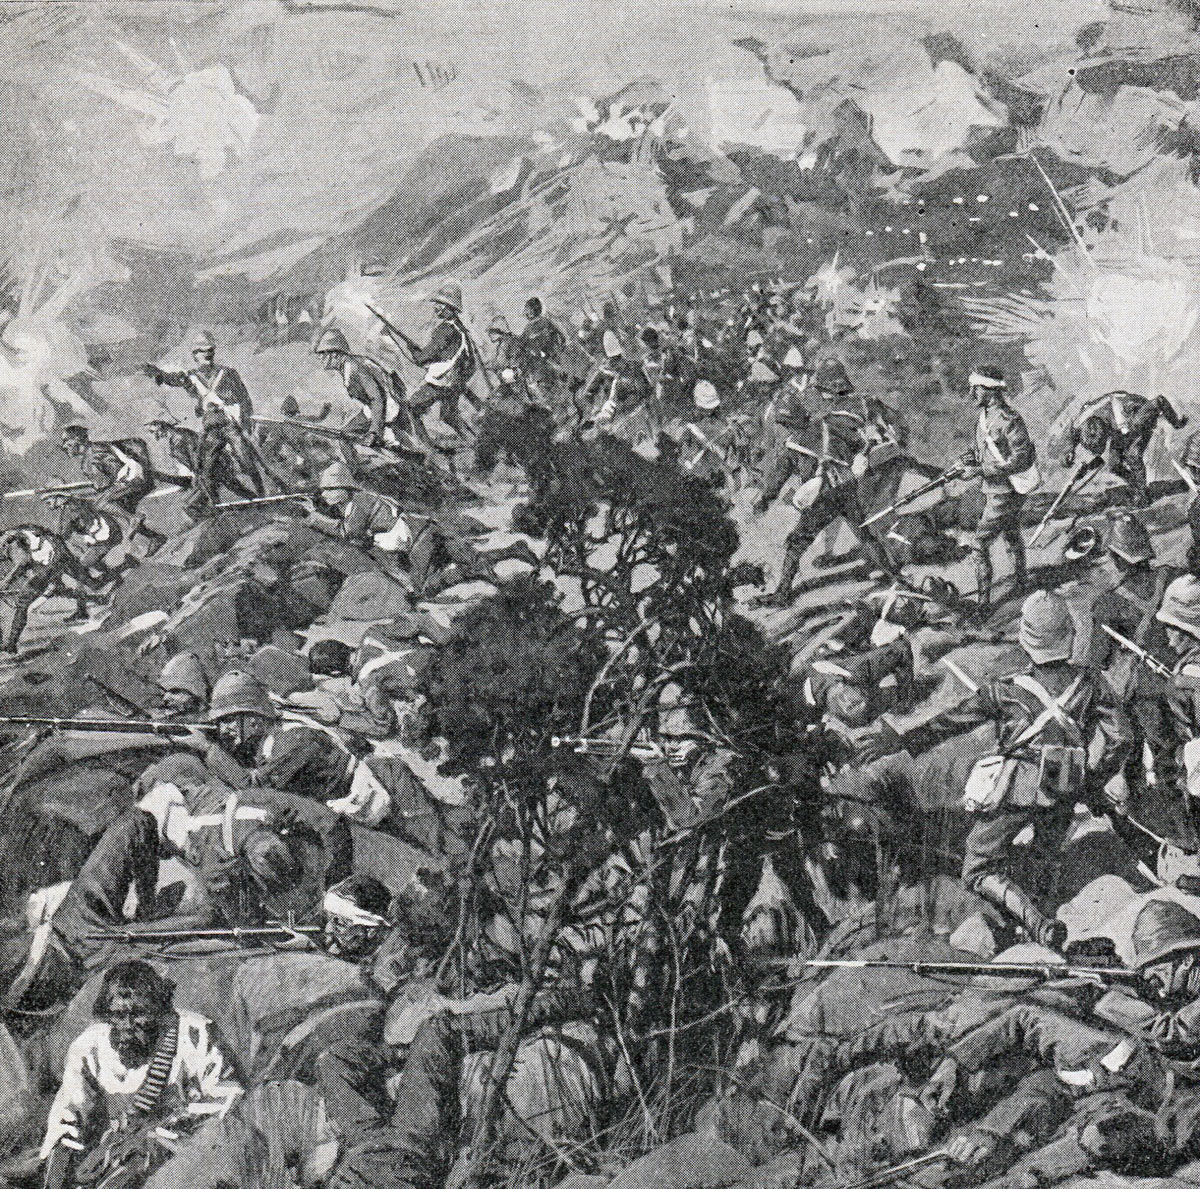 Boer attack on Wagon Hill: Siege of Ladysmith, 2nd November 1899 to 27th February 1900 in the Great Boer War